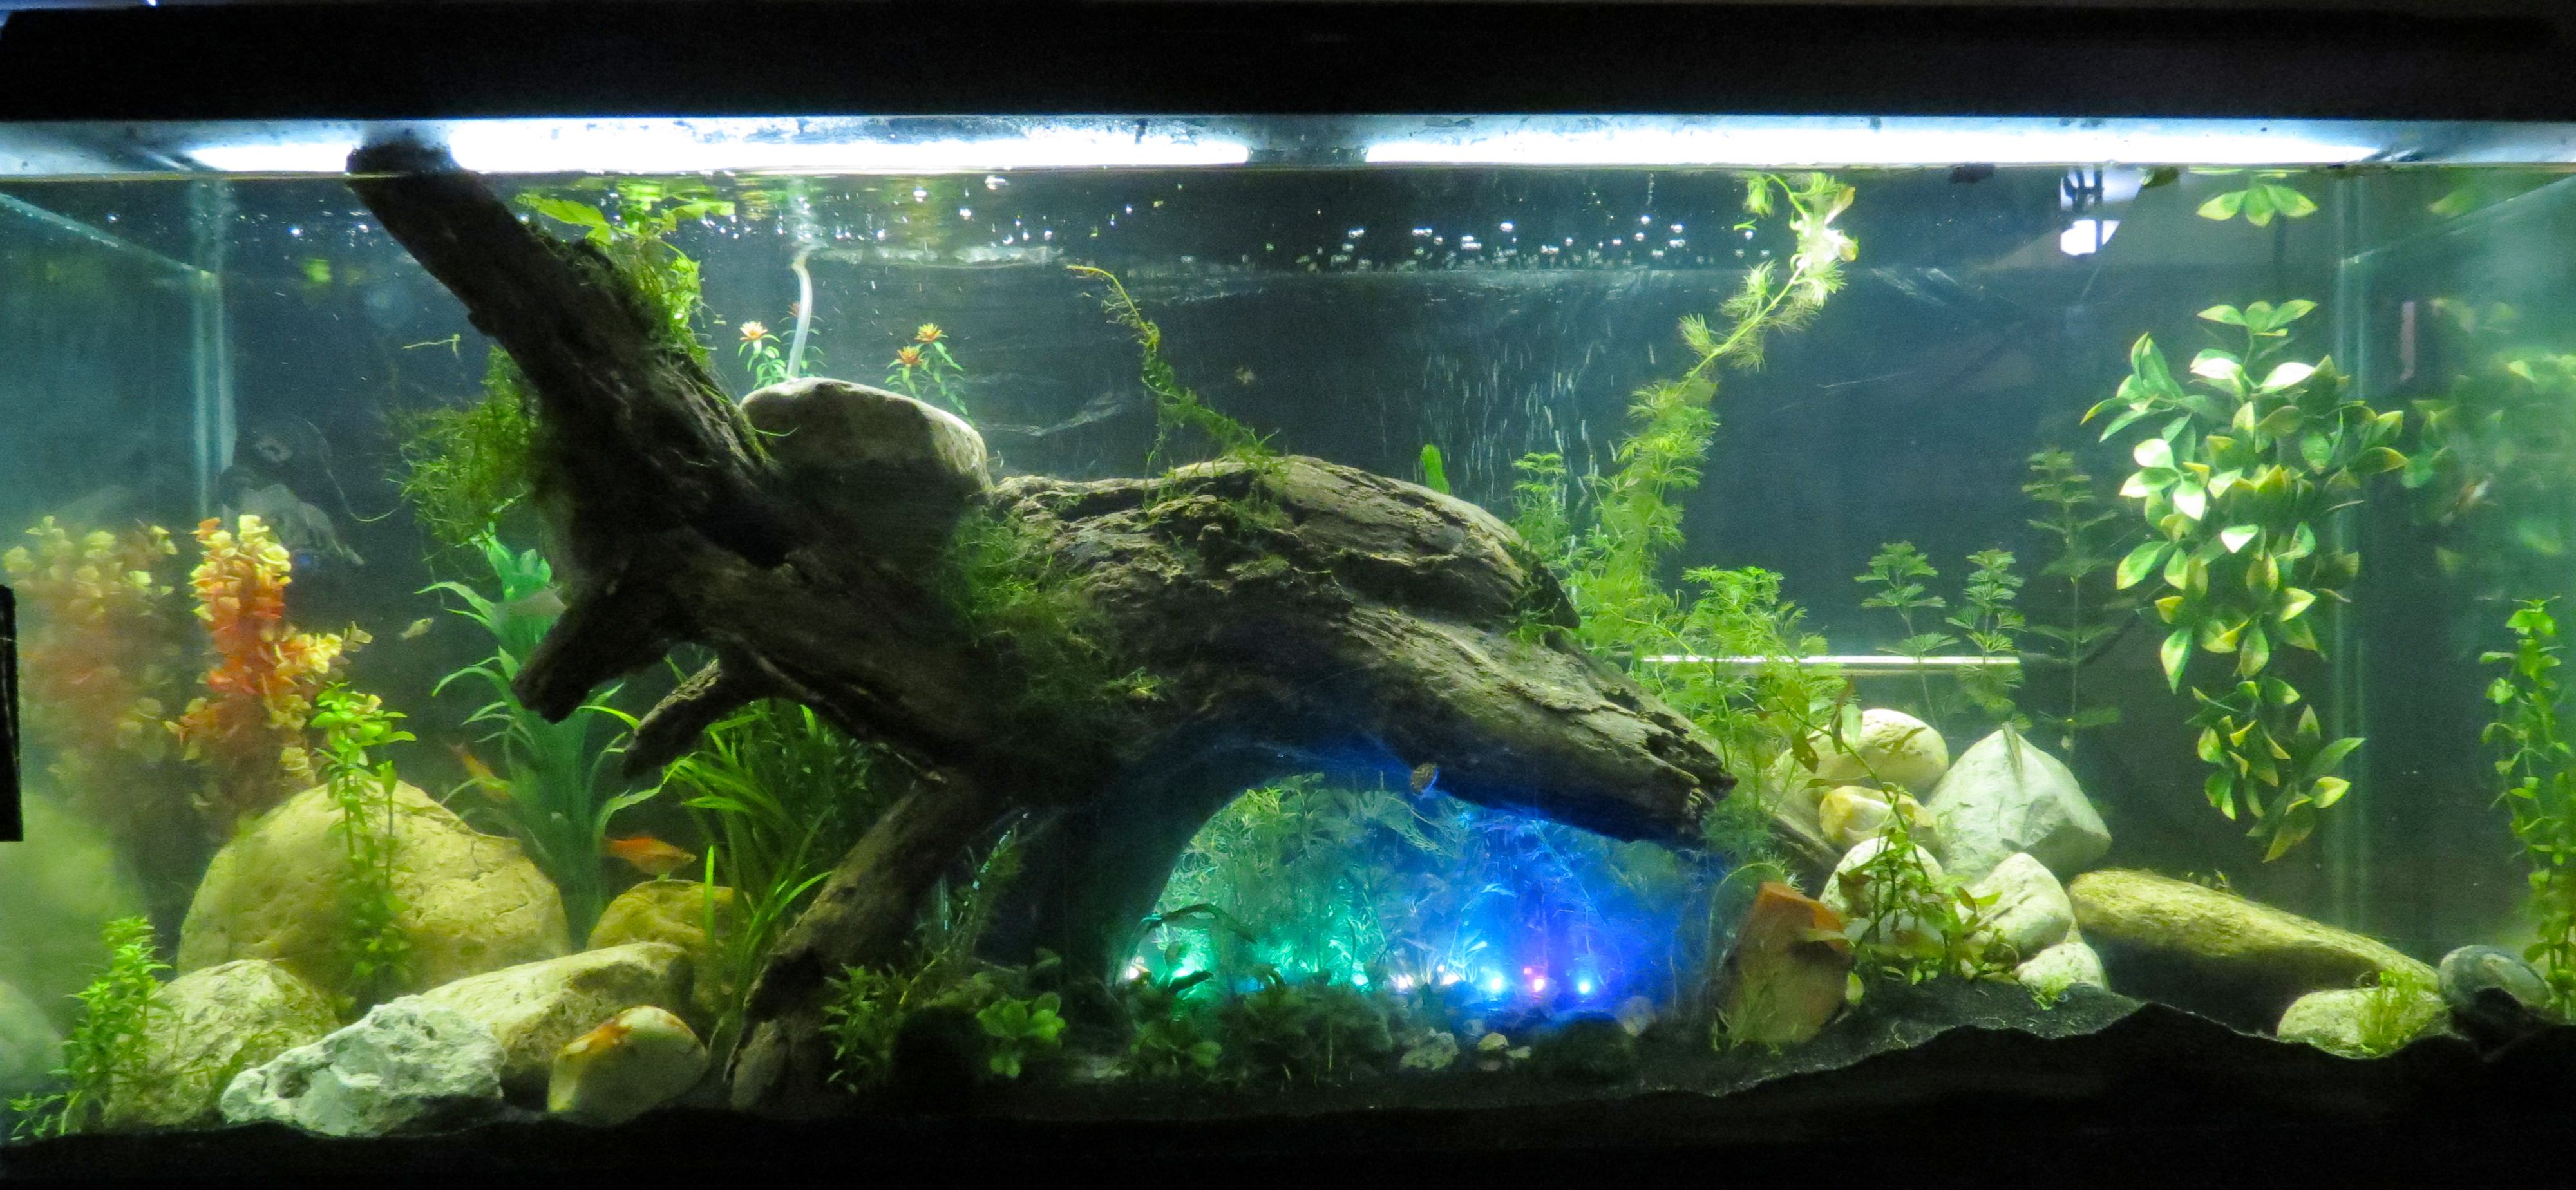 55 gallon fish tank aquarium trustefish fish for 29 gallon fish tank